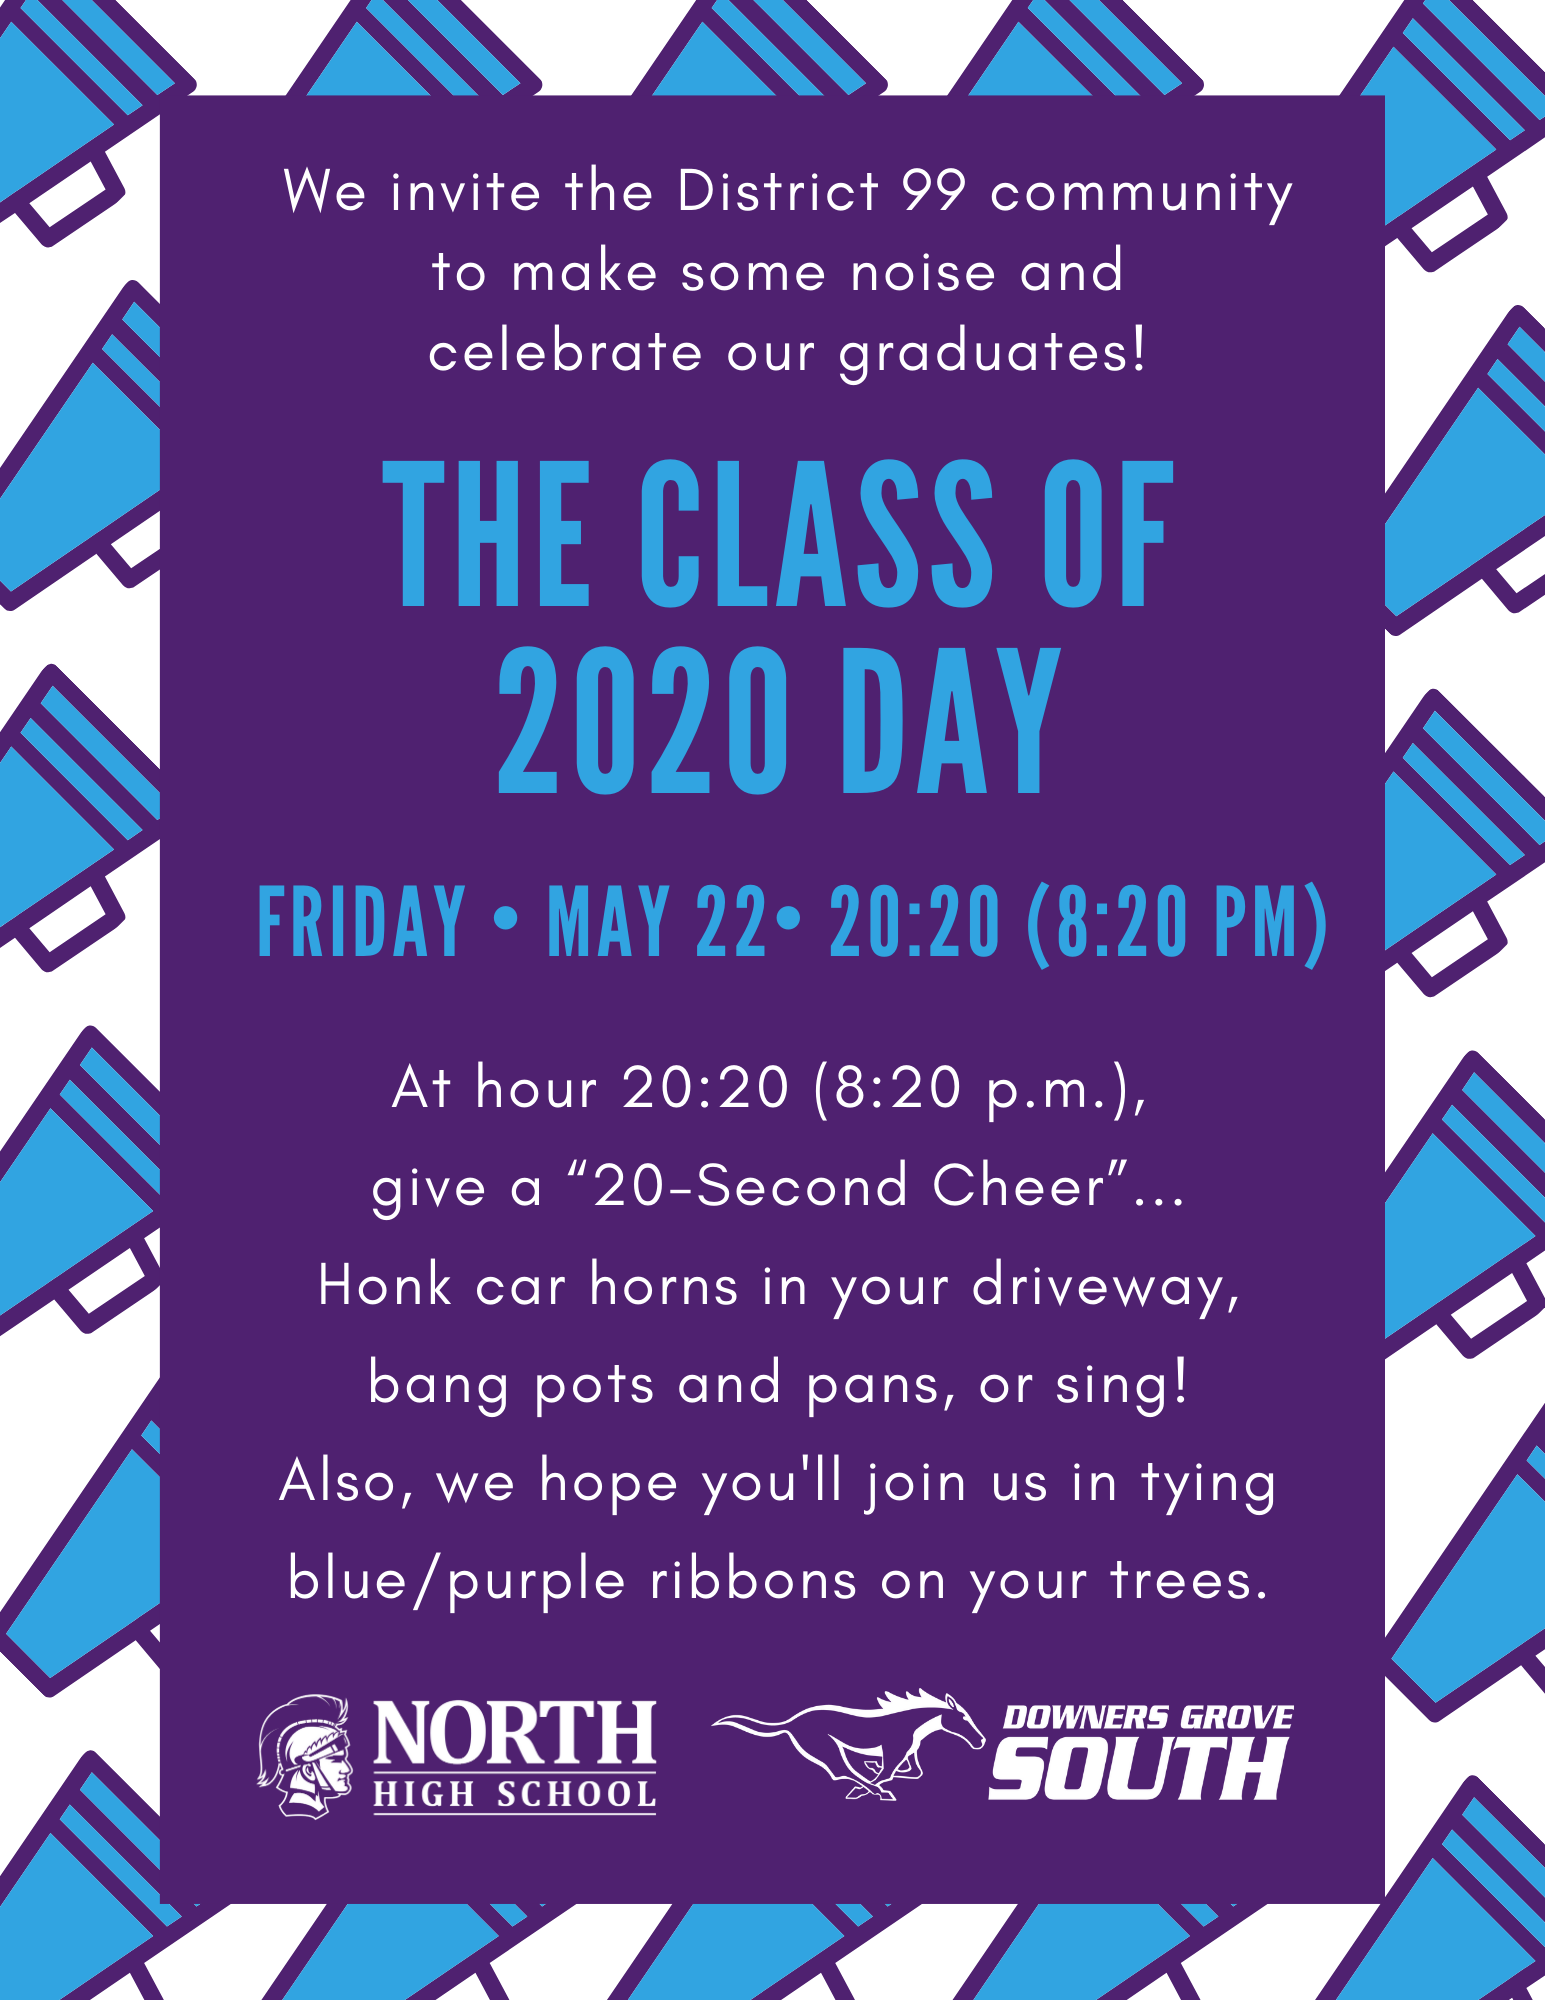 051320-Class of 2020 Day FINAL (1)